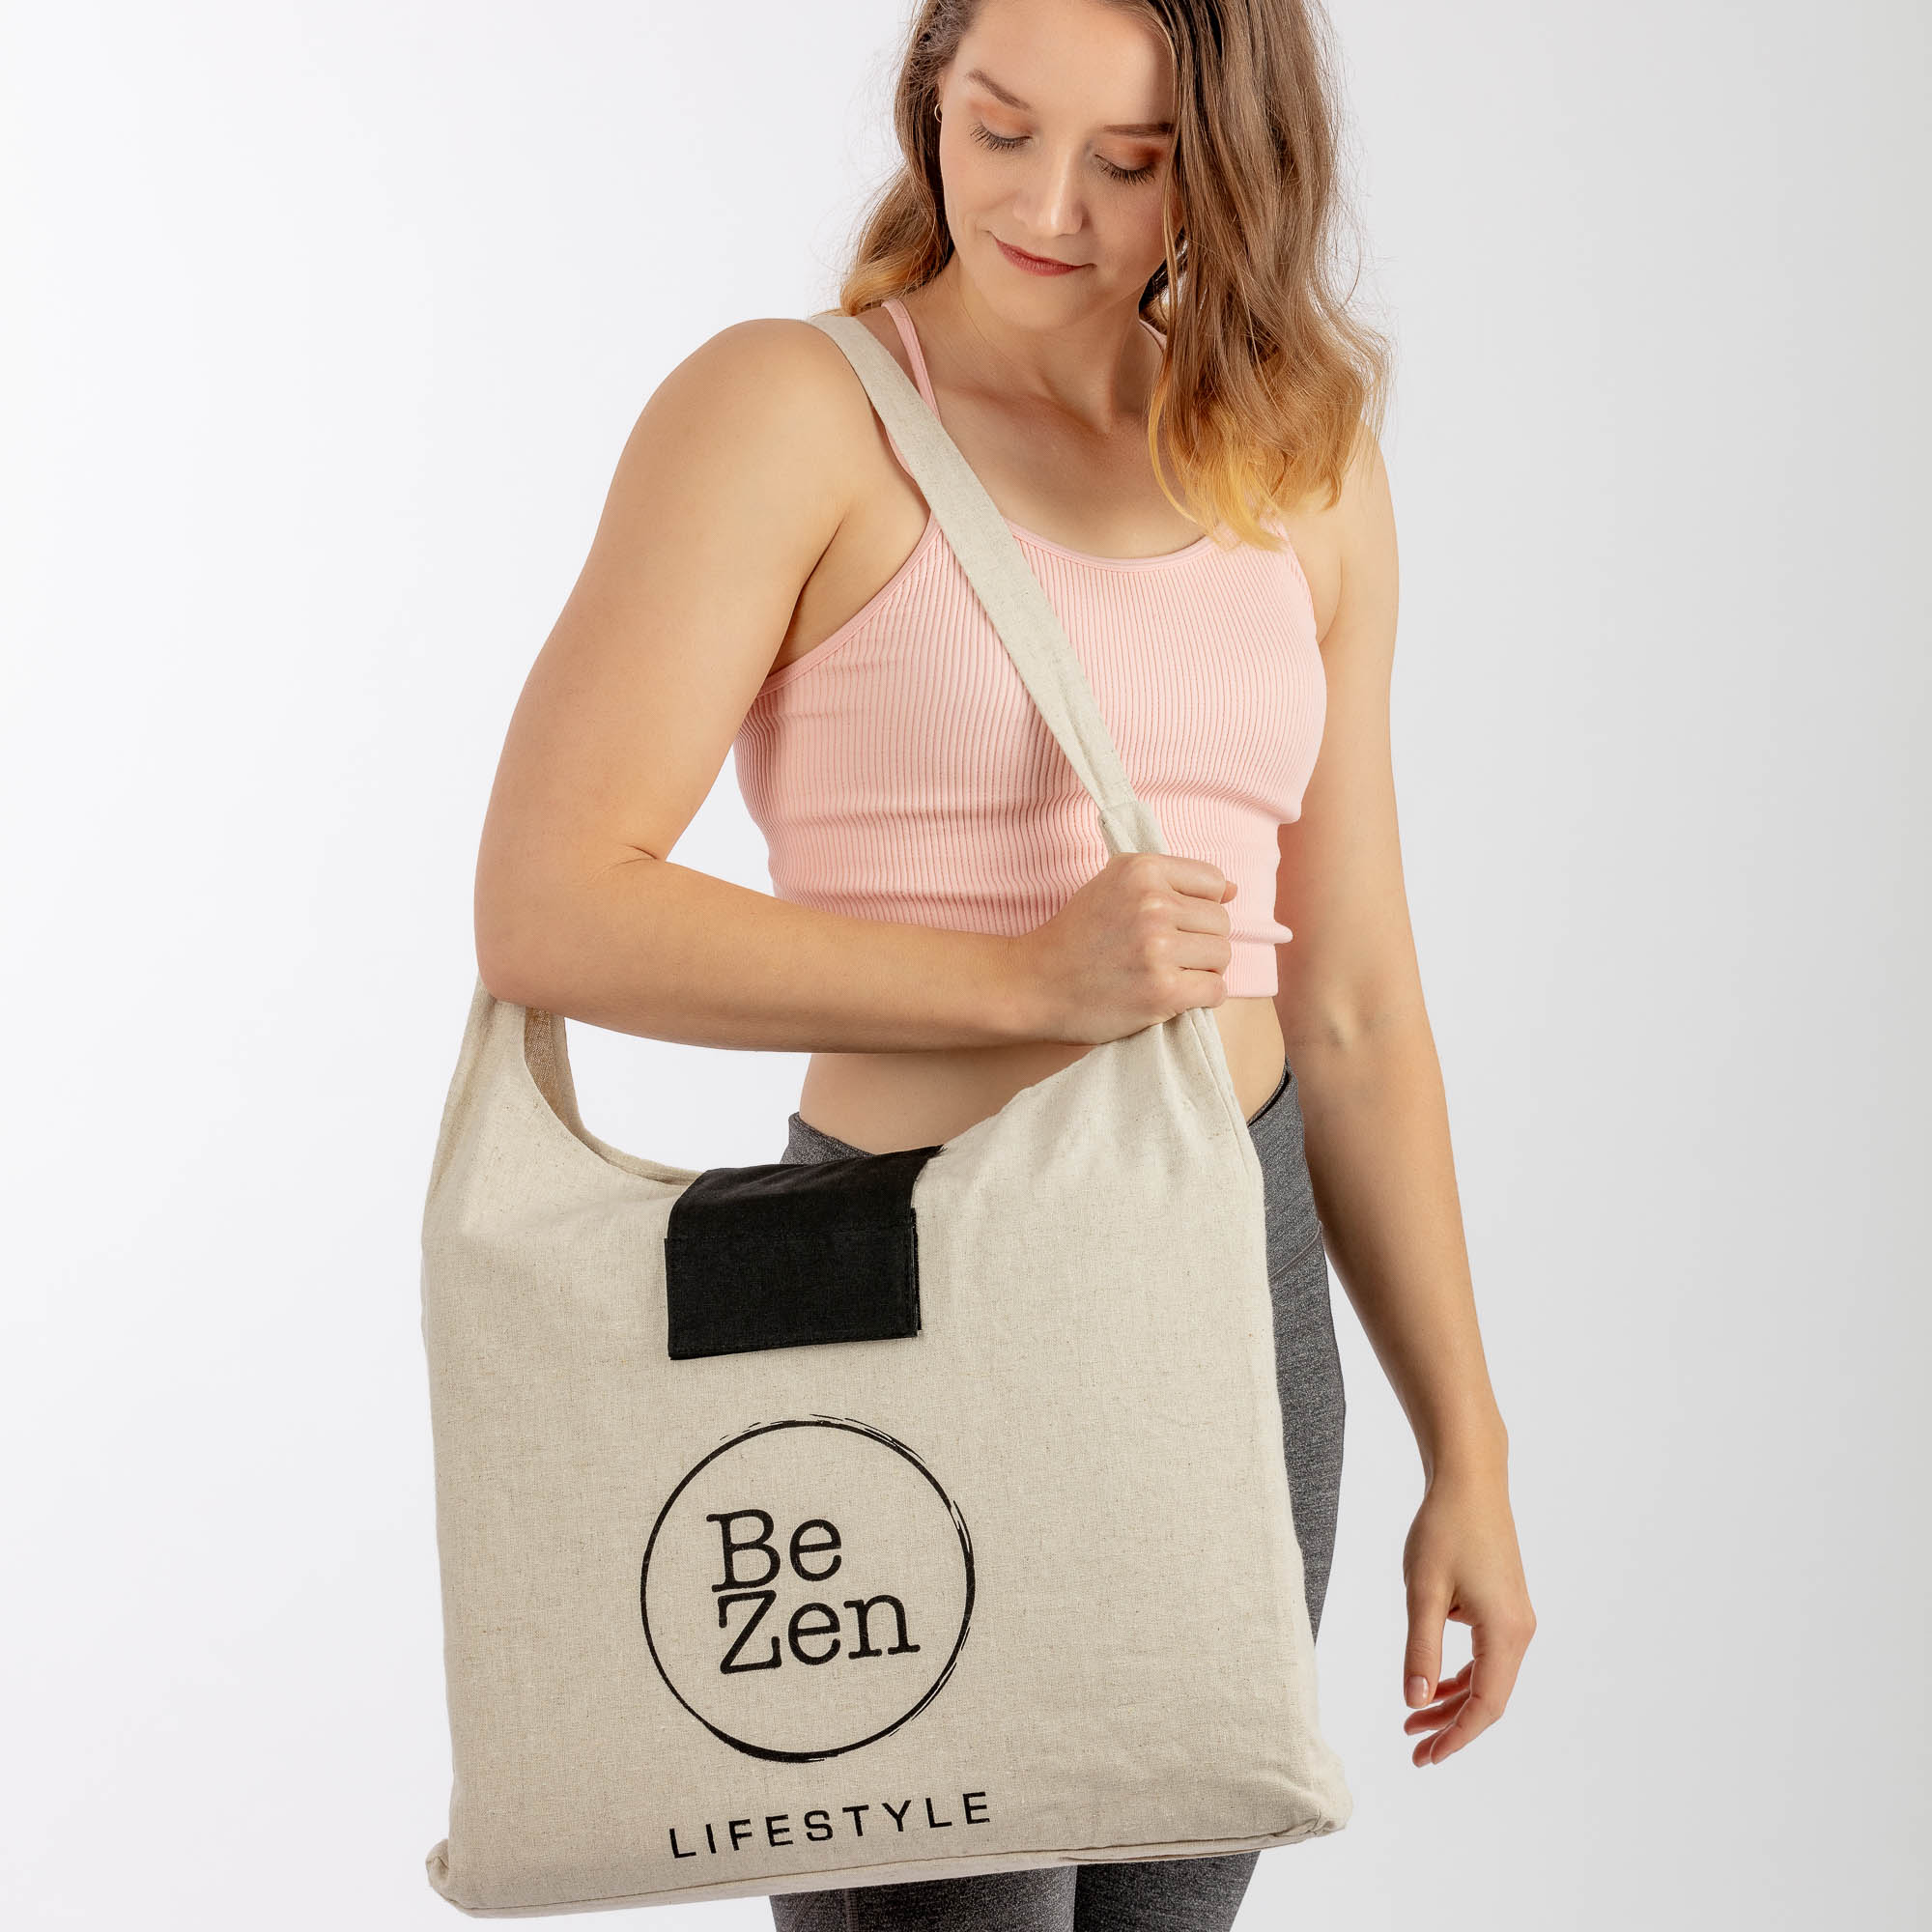 Be Zen Model wearing bag - Product photography with model sample